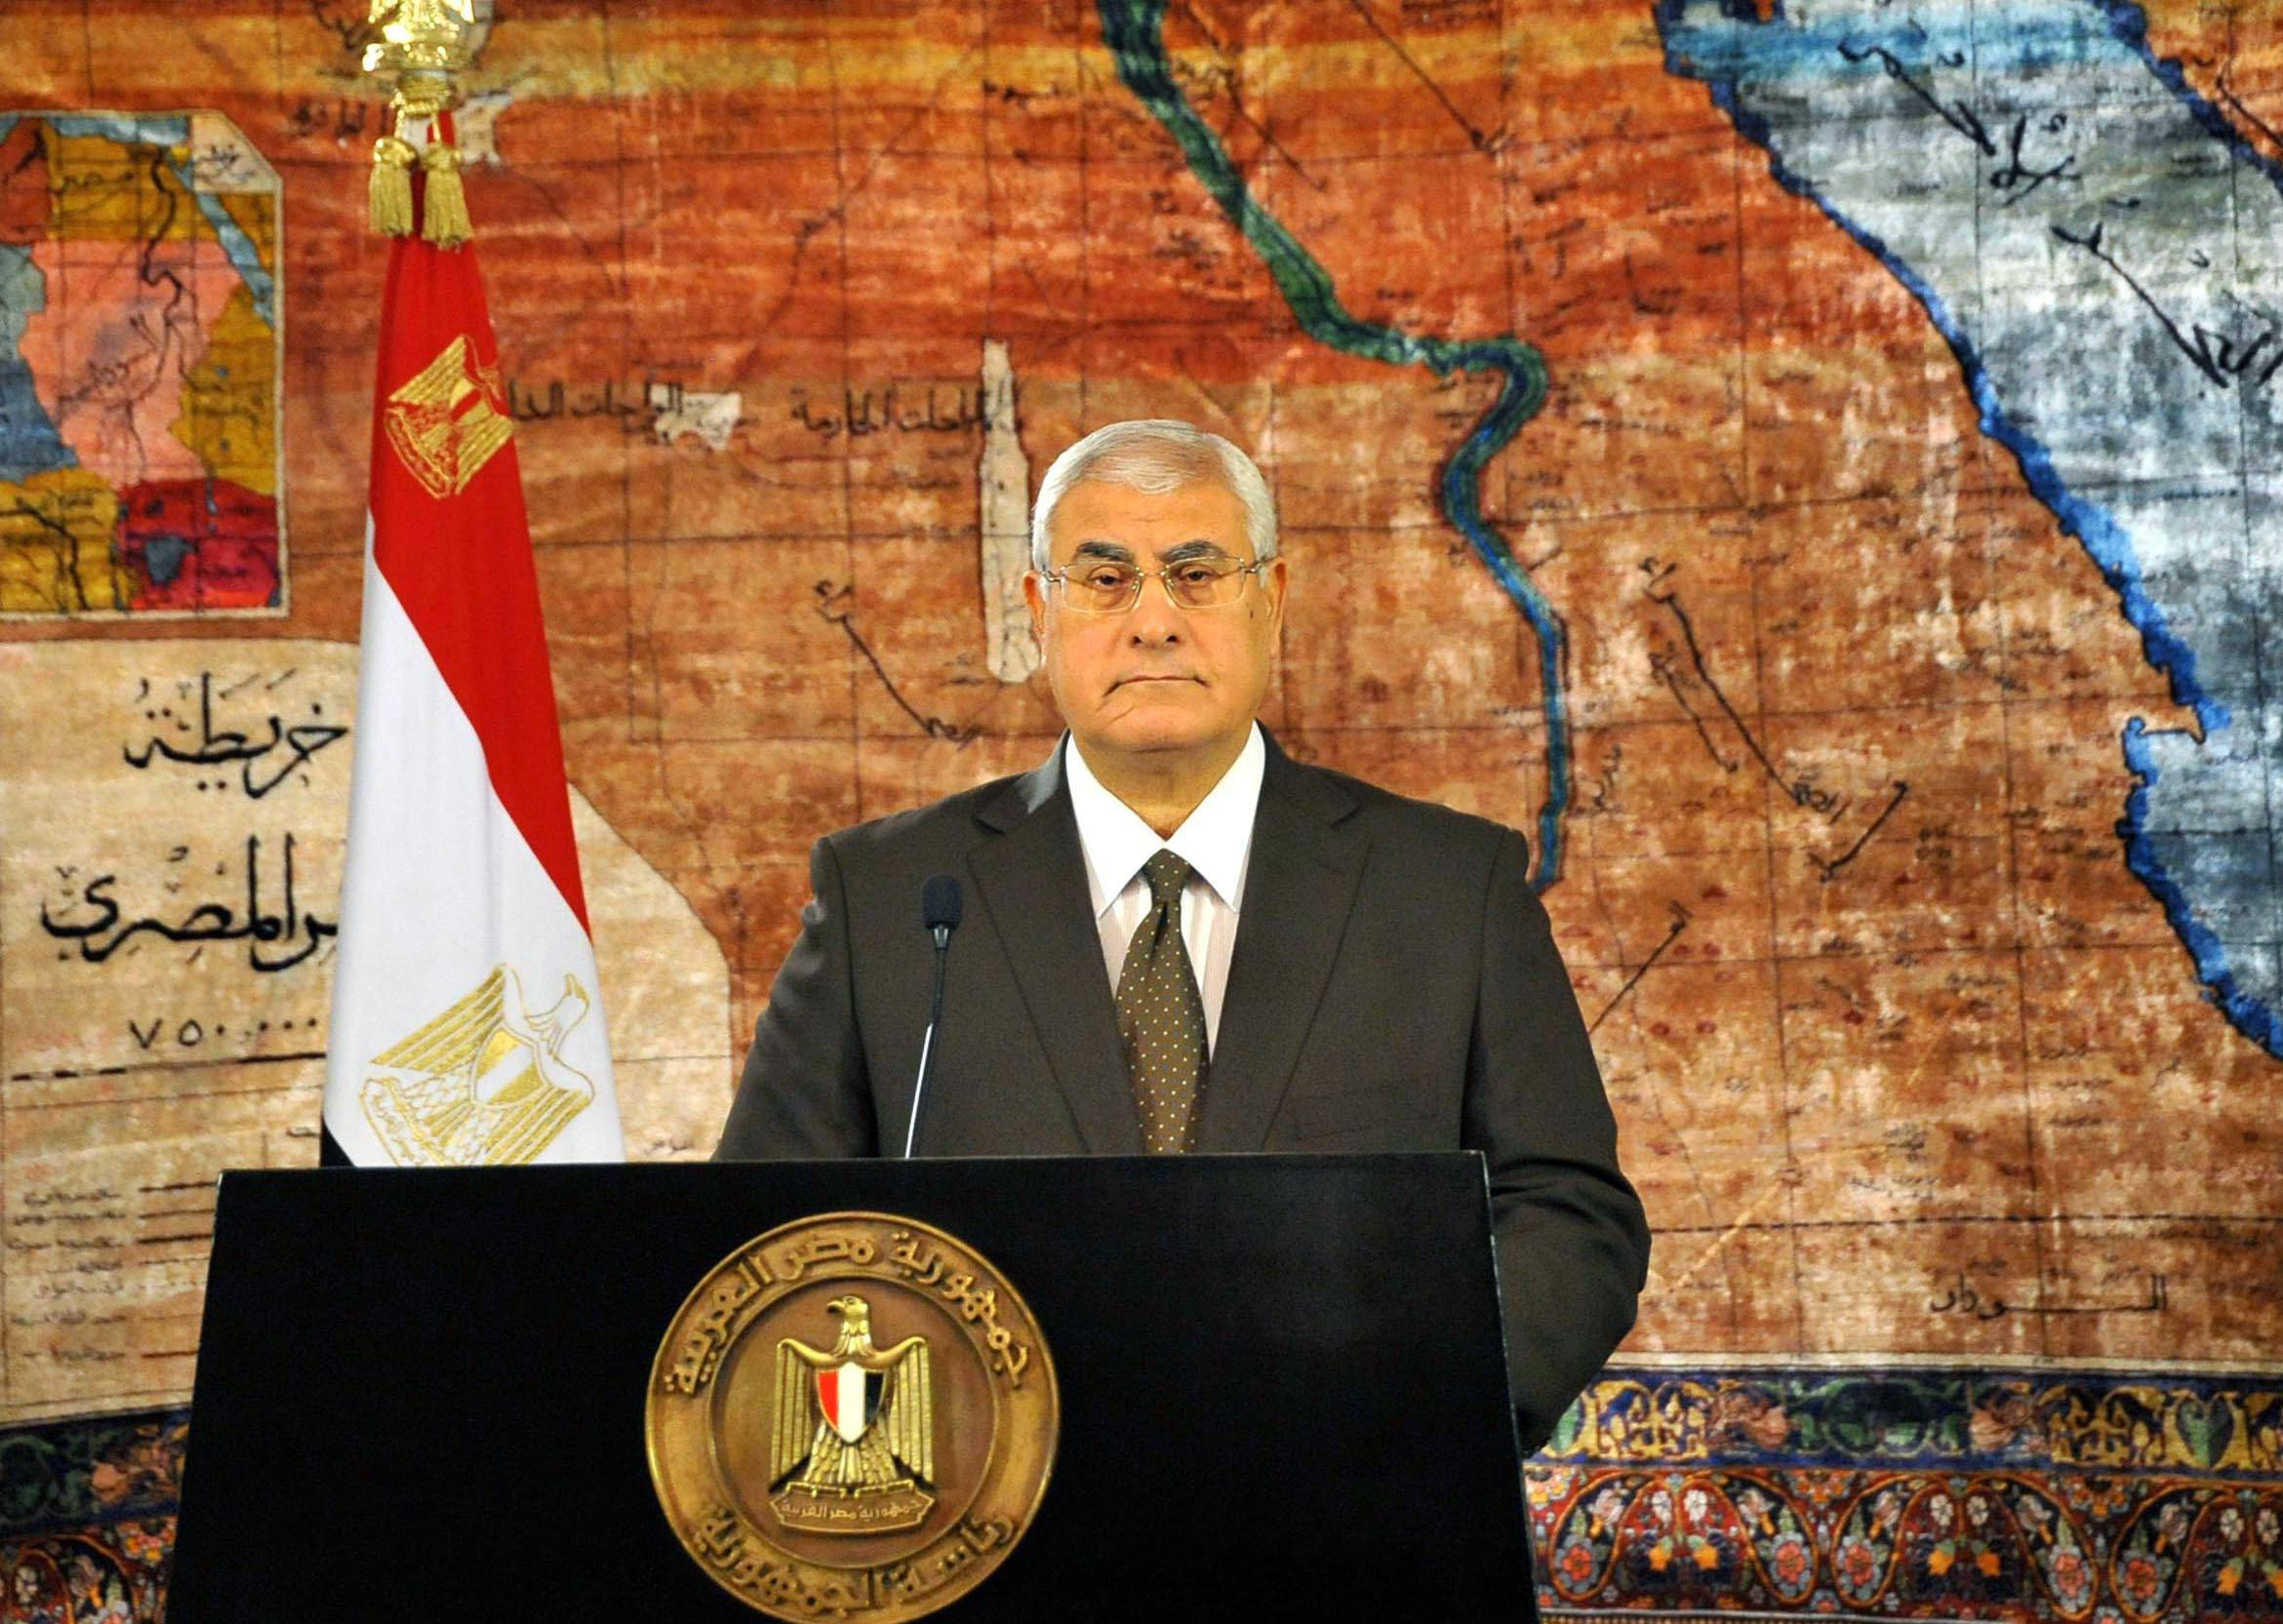 Egypt referendum on draft constitution on Jan 14-15